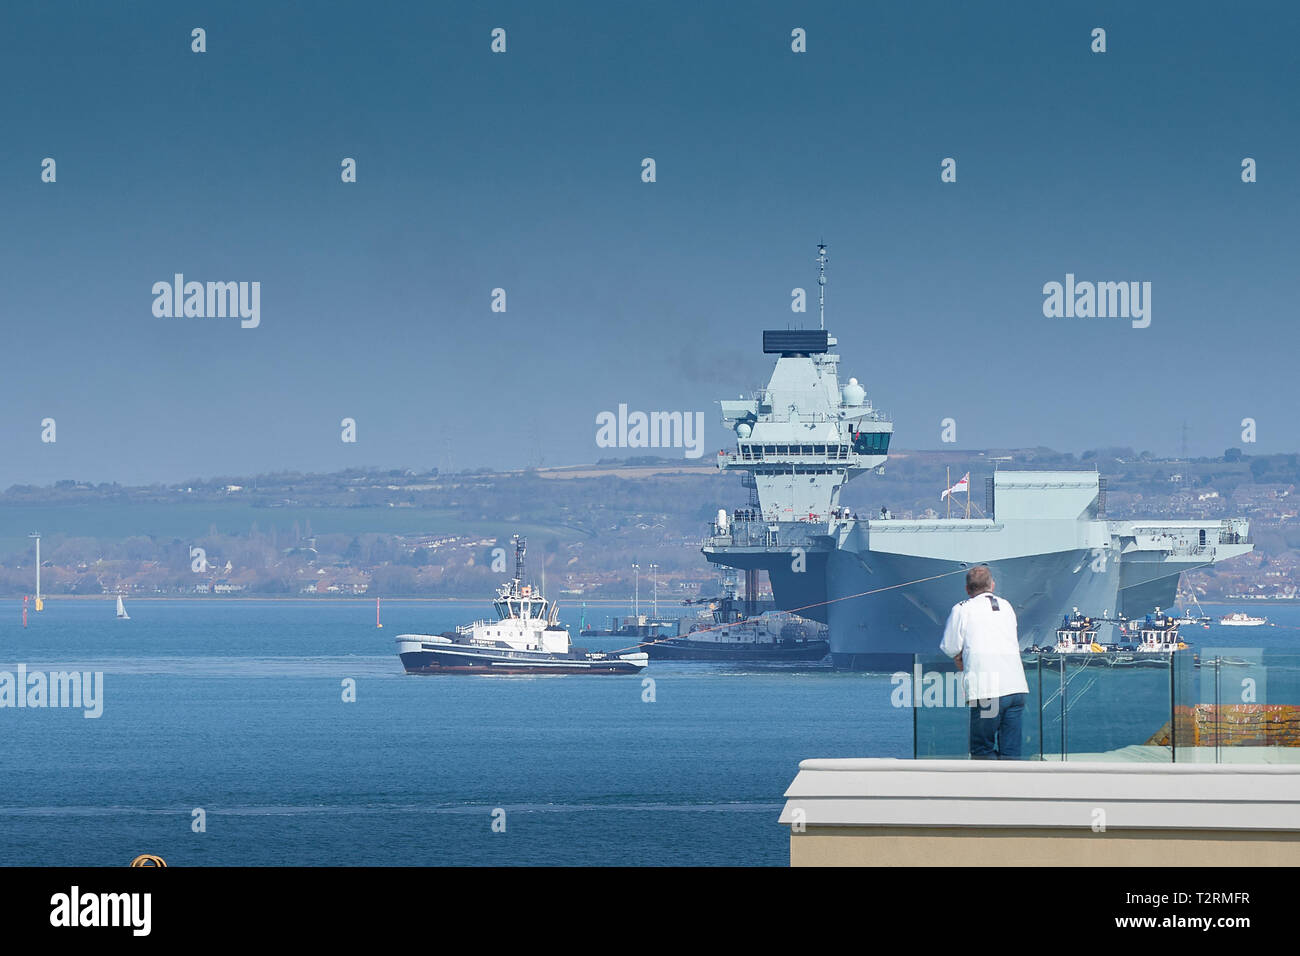 Royal Navy Aircraft Carrier, HMS QUEEN ELIZABETH, Being Guided From Her Berth By 5 Tugs Prior To Her Departure From Portsmouth To Rosyth, Scotland. - Stock Image